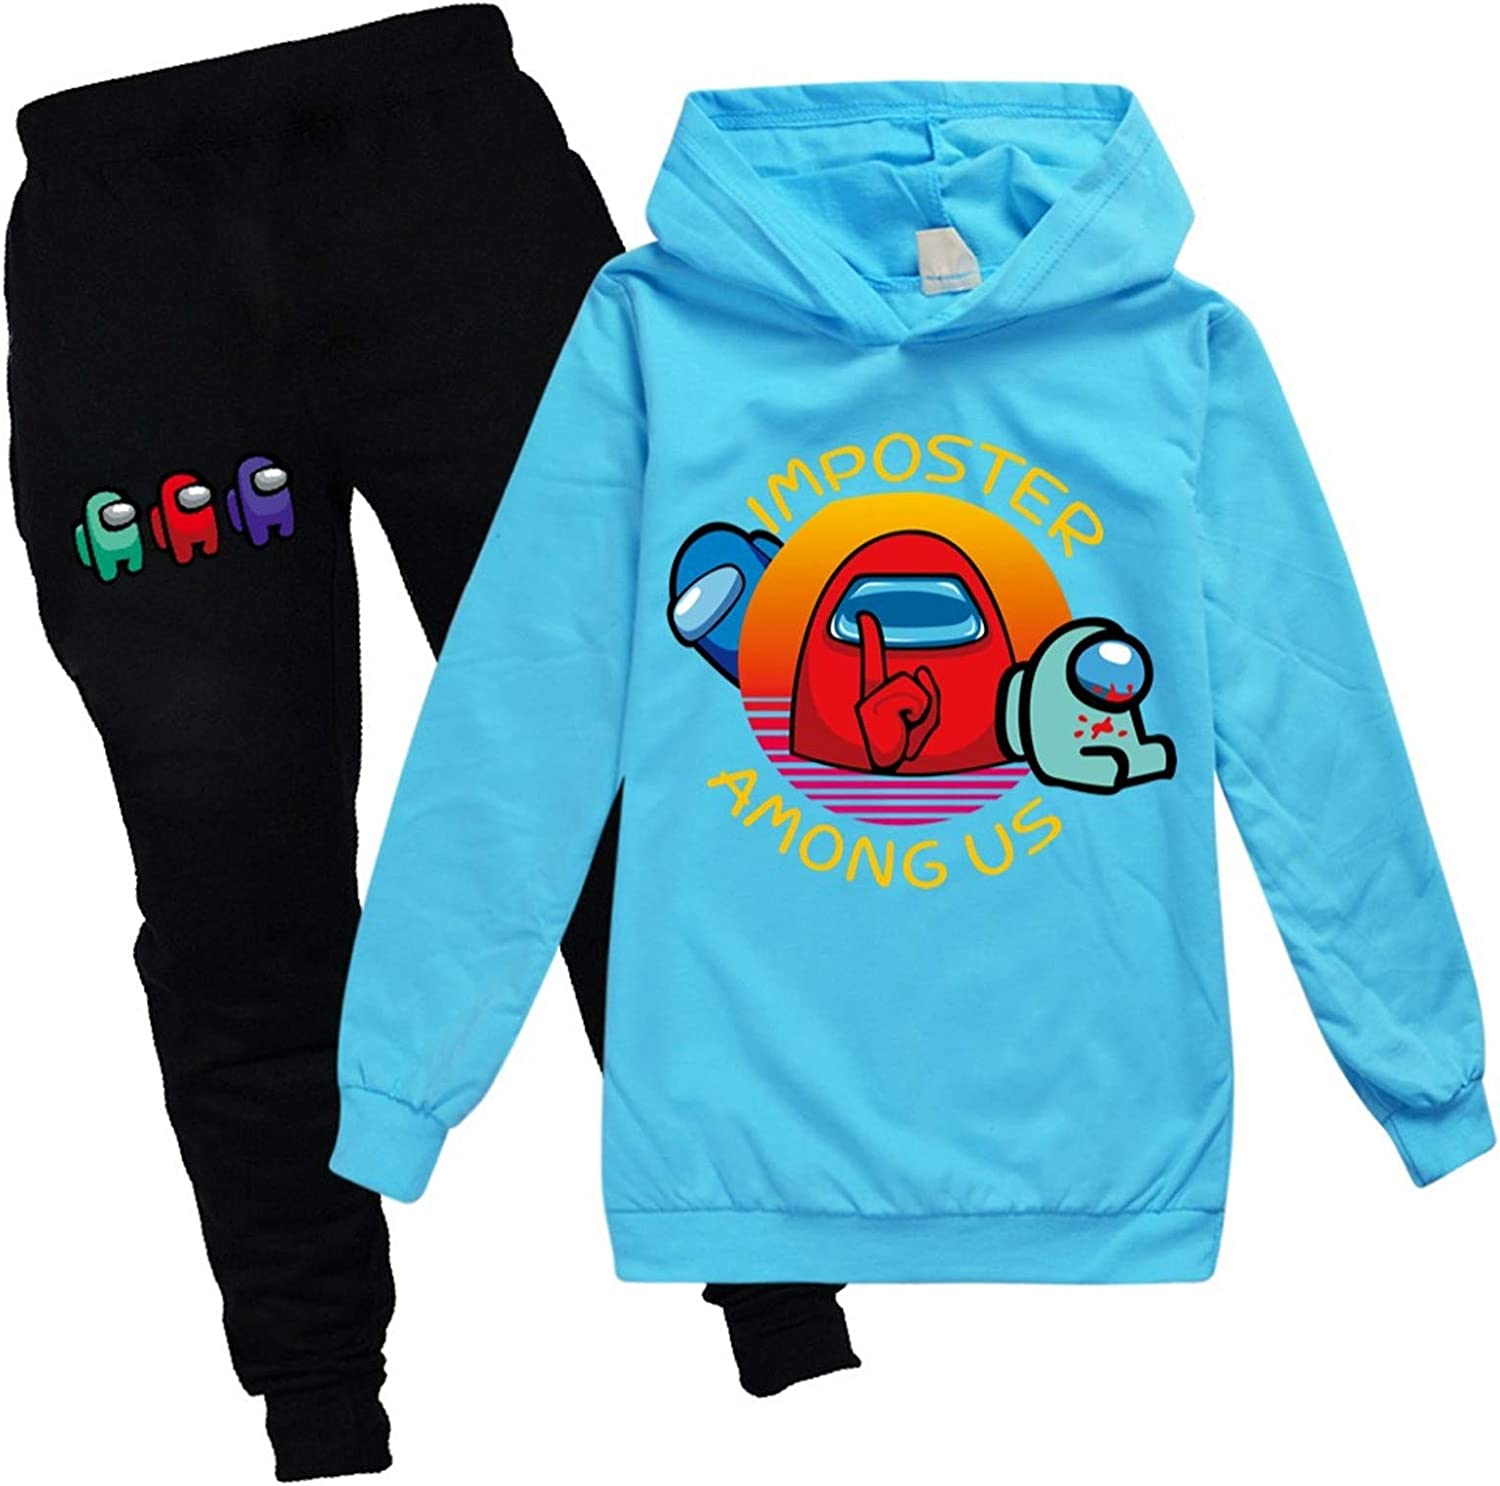 Childrens Among Us Pullover Hoodie And Sweatpants Suit 2 Piece Outfit Sweatshirt Set For Boys Girls